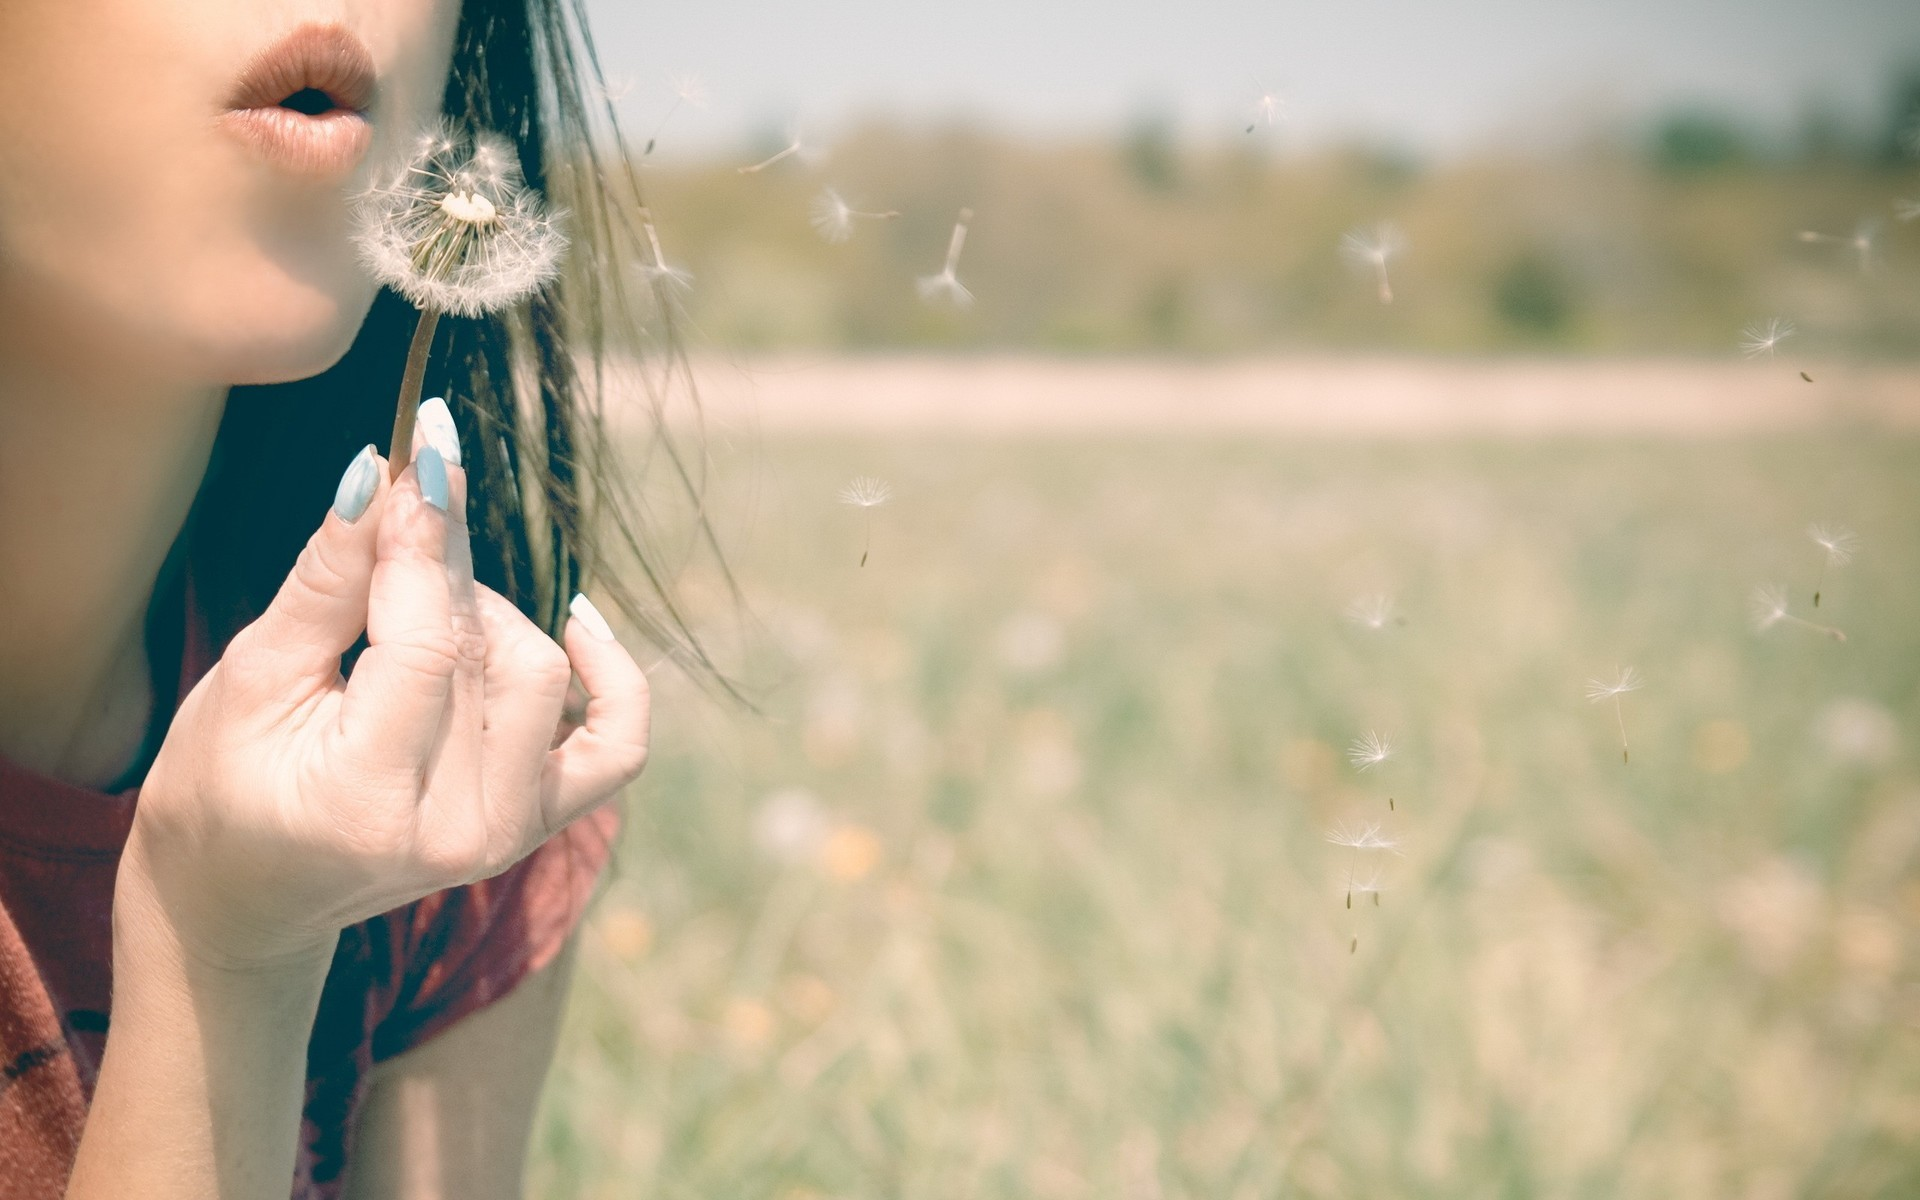 … on the dandelion HD Wallpaper Blowing …